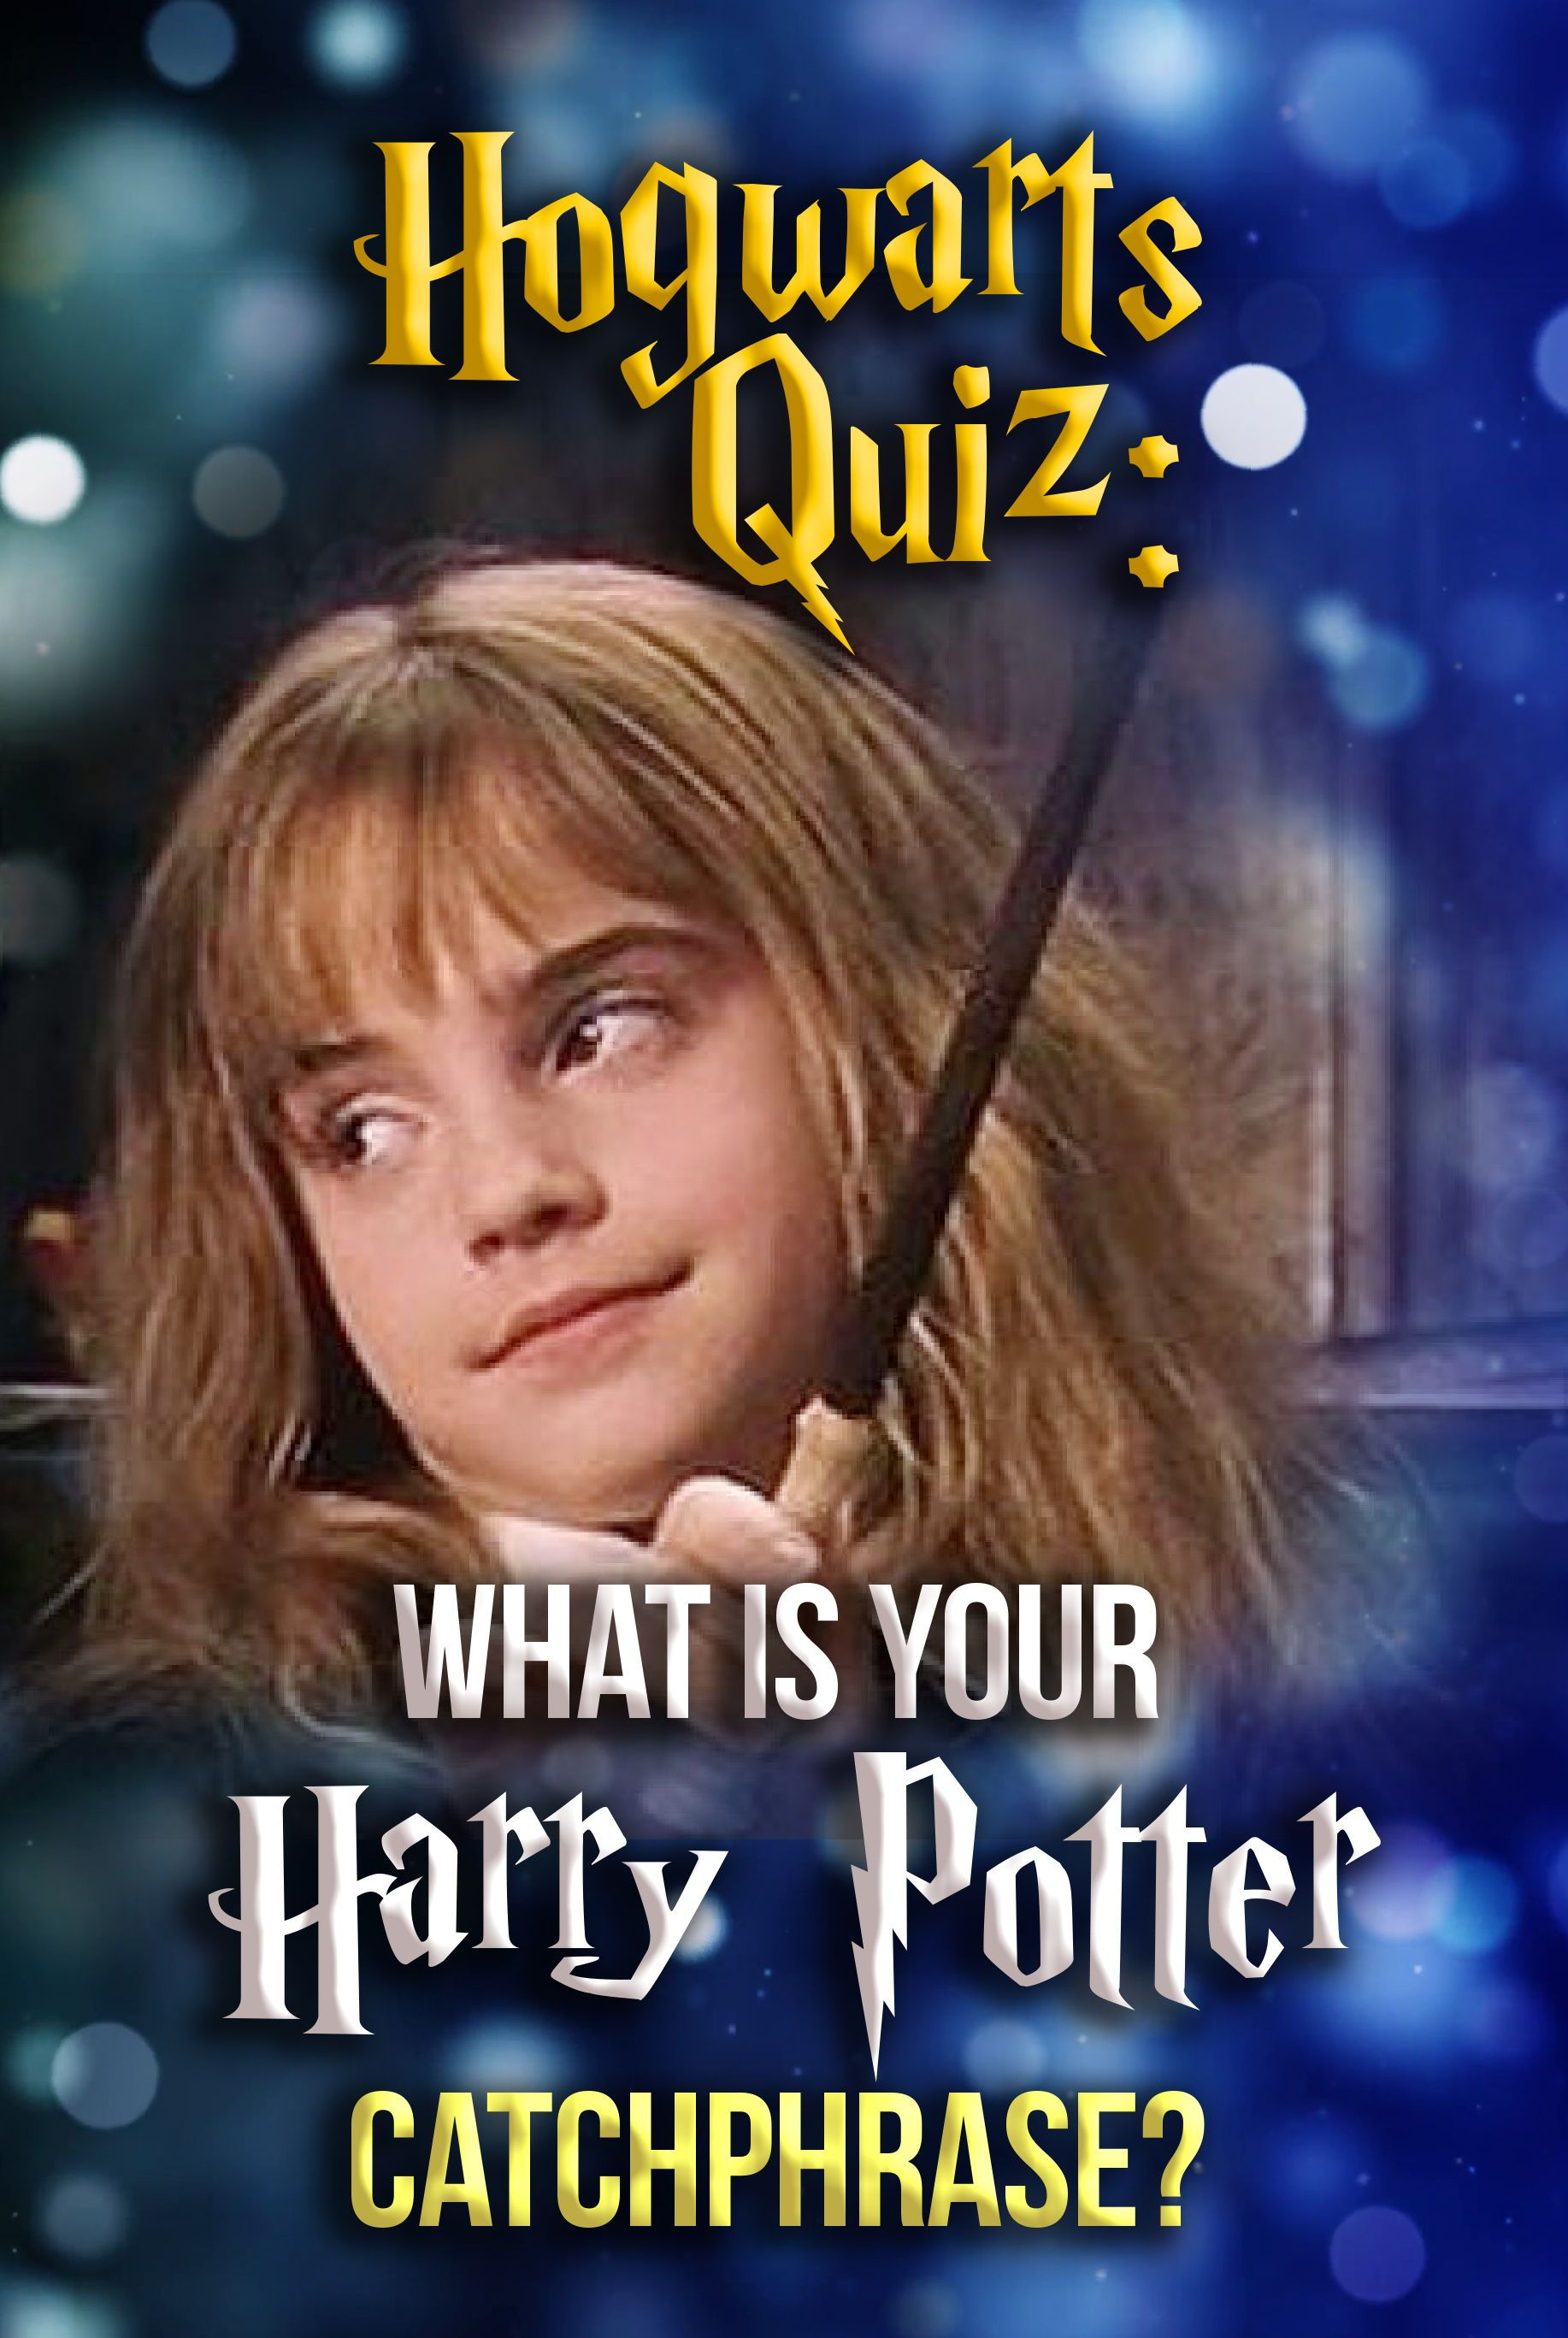 Hogwarts Quiz: What Is Your Harry Potter Catchphrase